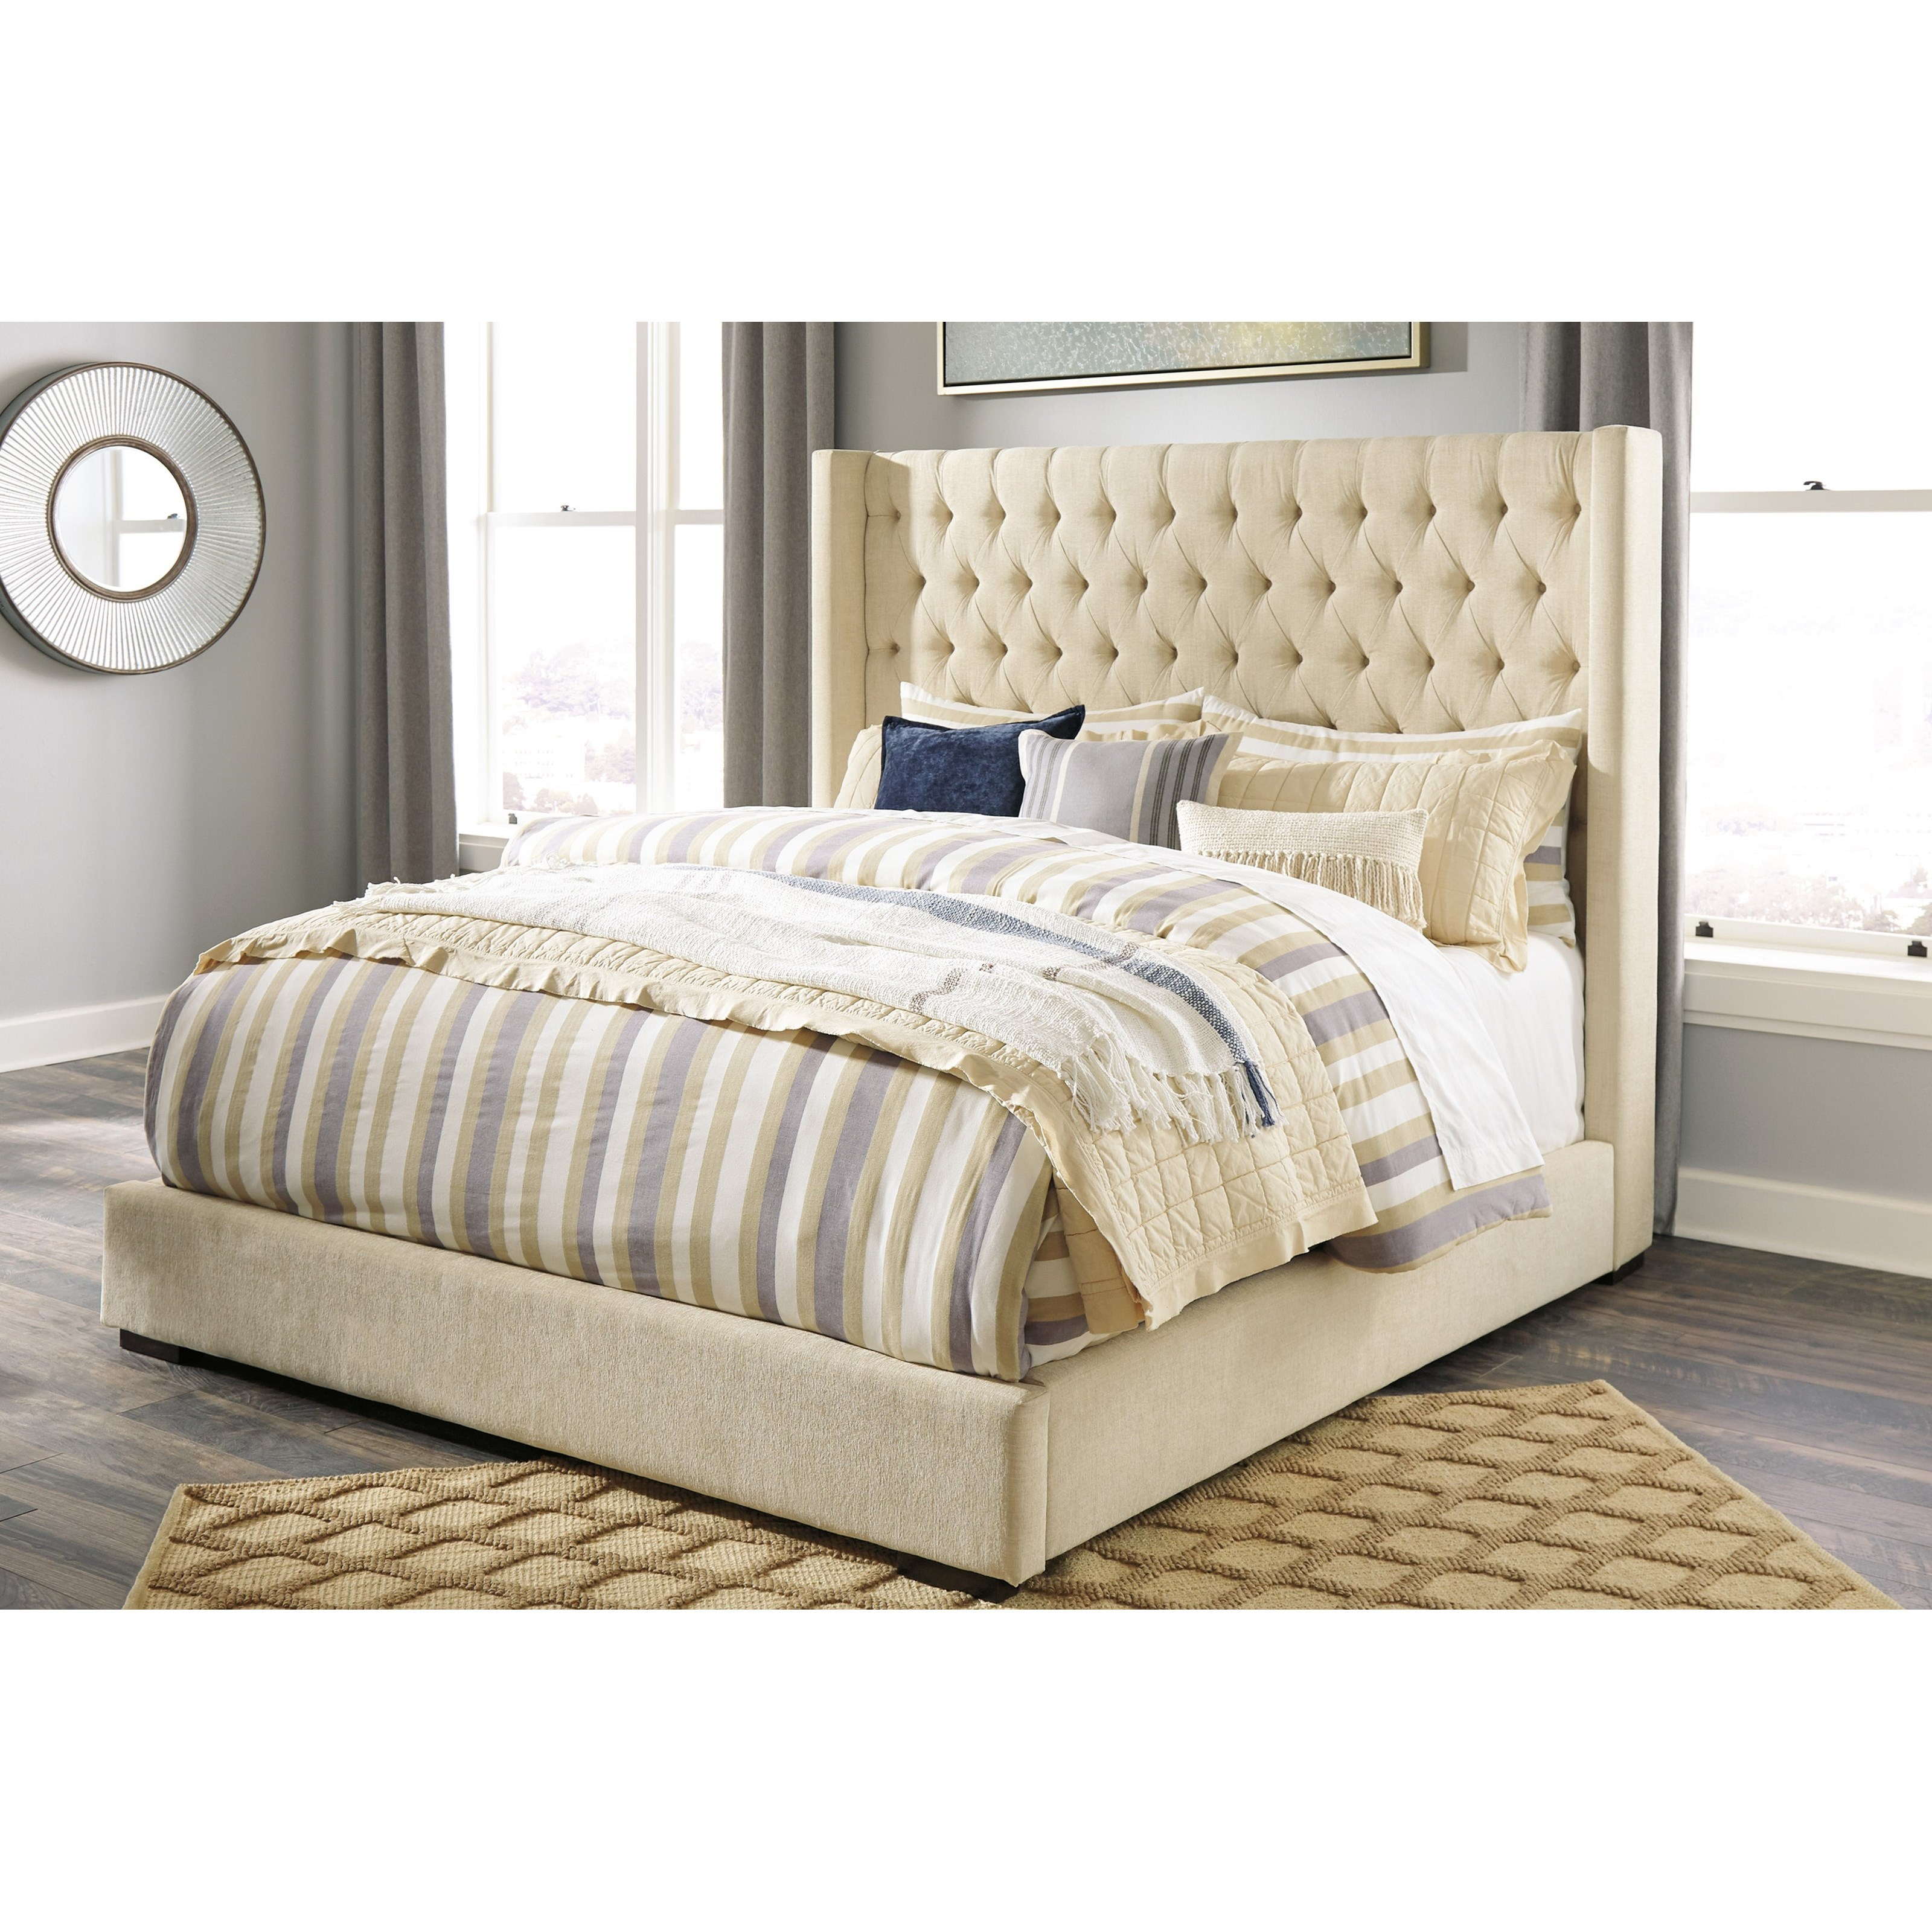 King Upholstered Tufted Wing Bed By Signature Design By